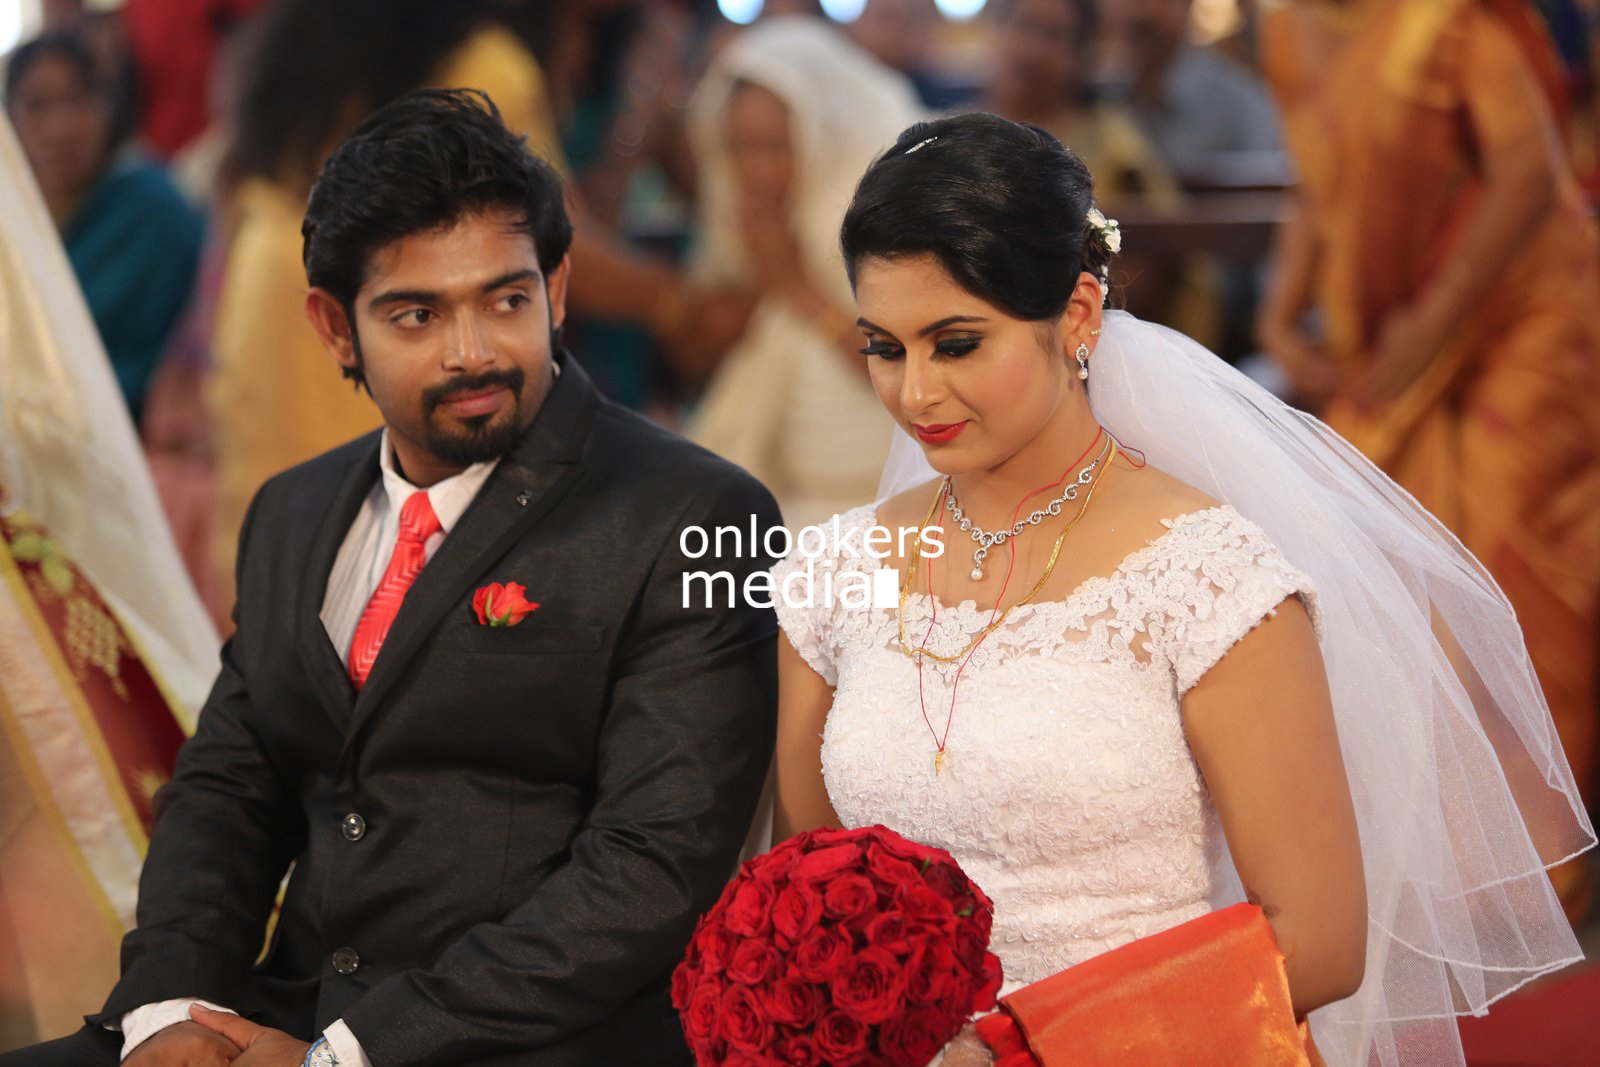 Sruthi Lakshmi, Sruthi Lakshmi wedding stills photos, Sruthi Lakshmi marriage photos, Sruthi Lakshmi wedding reception, malayalam actress wedding, kerala wedding style